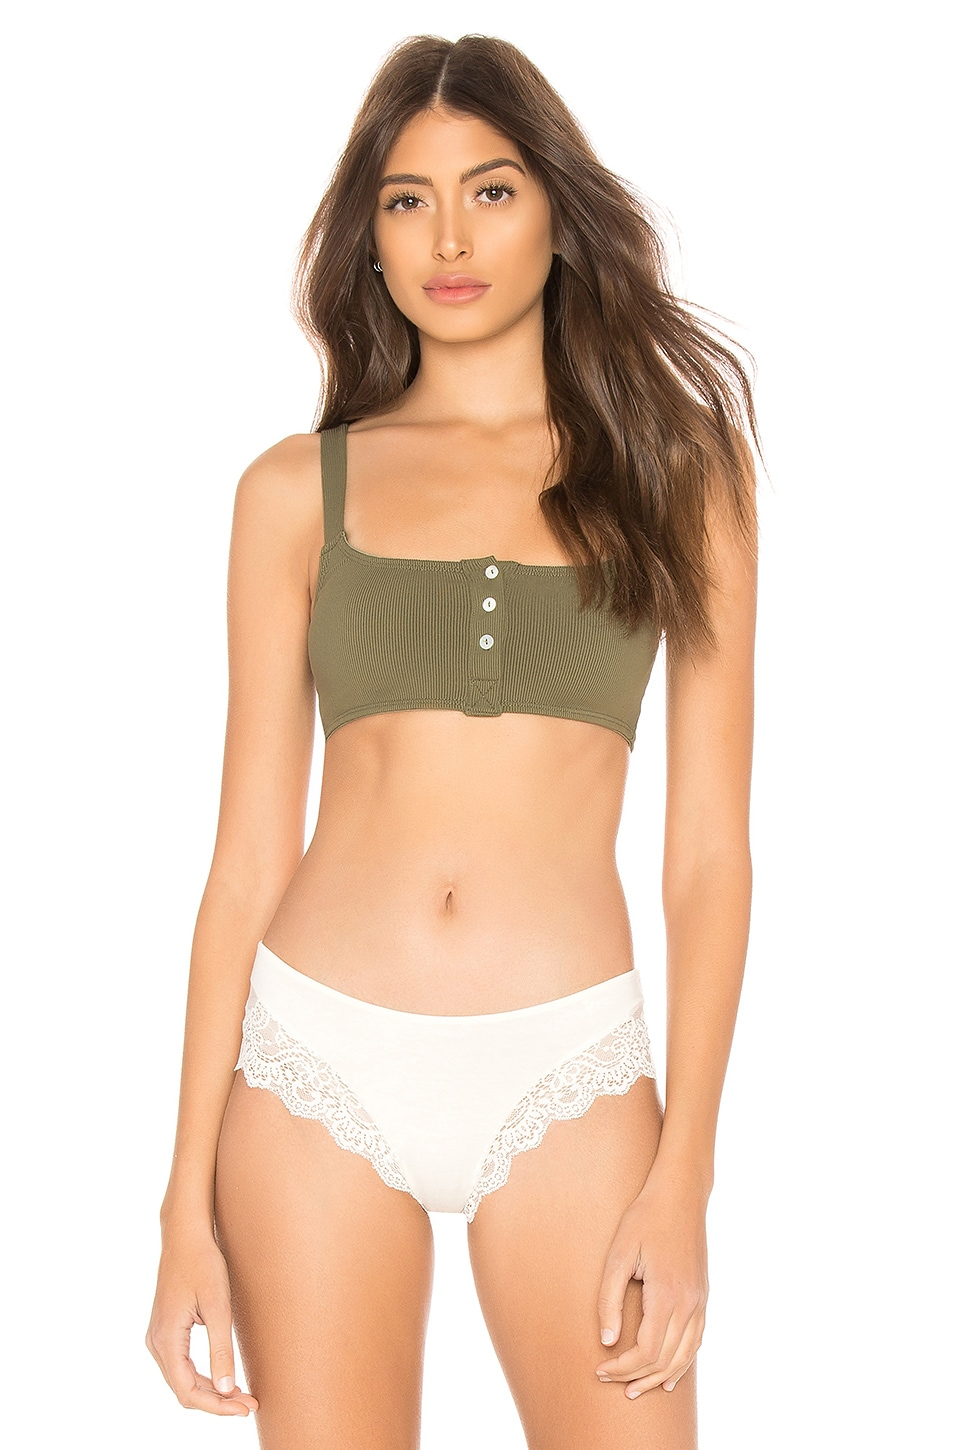 Details about  /Free People Remi Soft Bra Moss Green